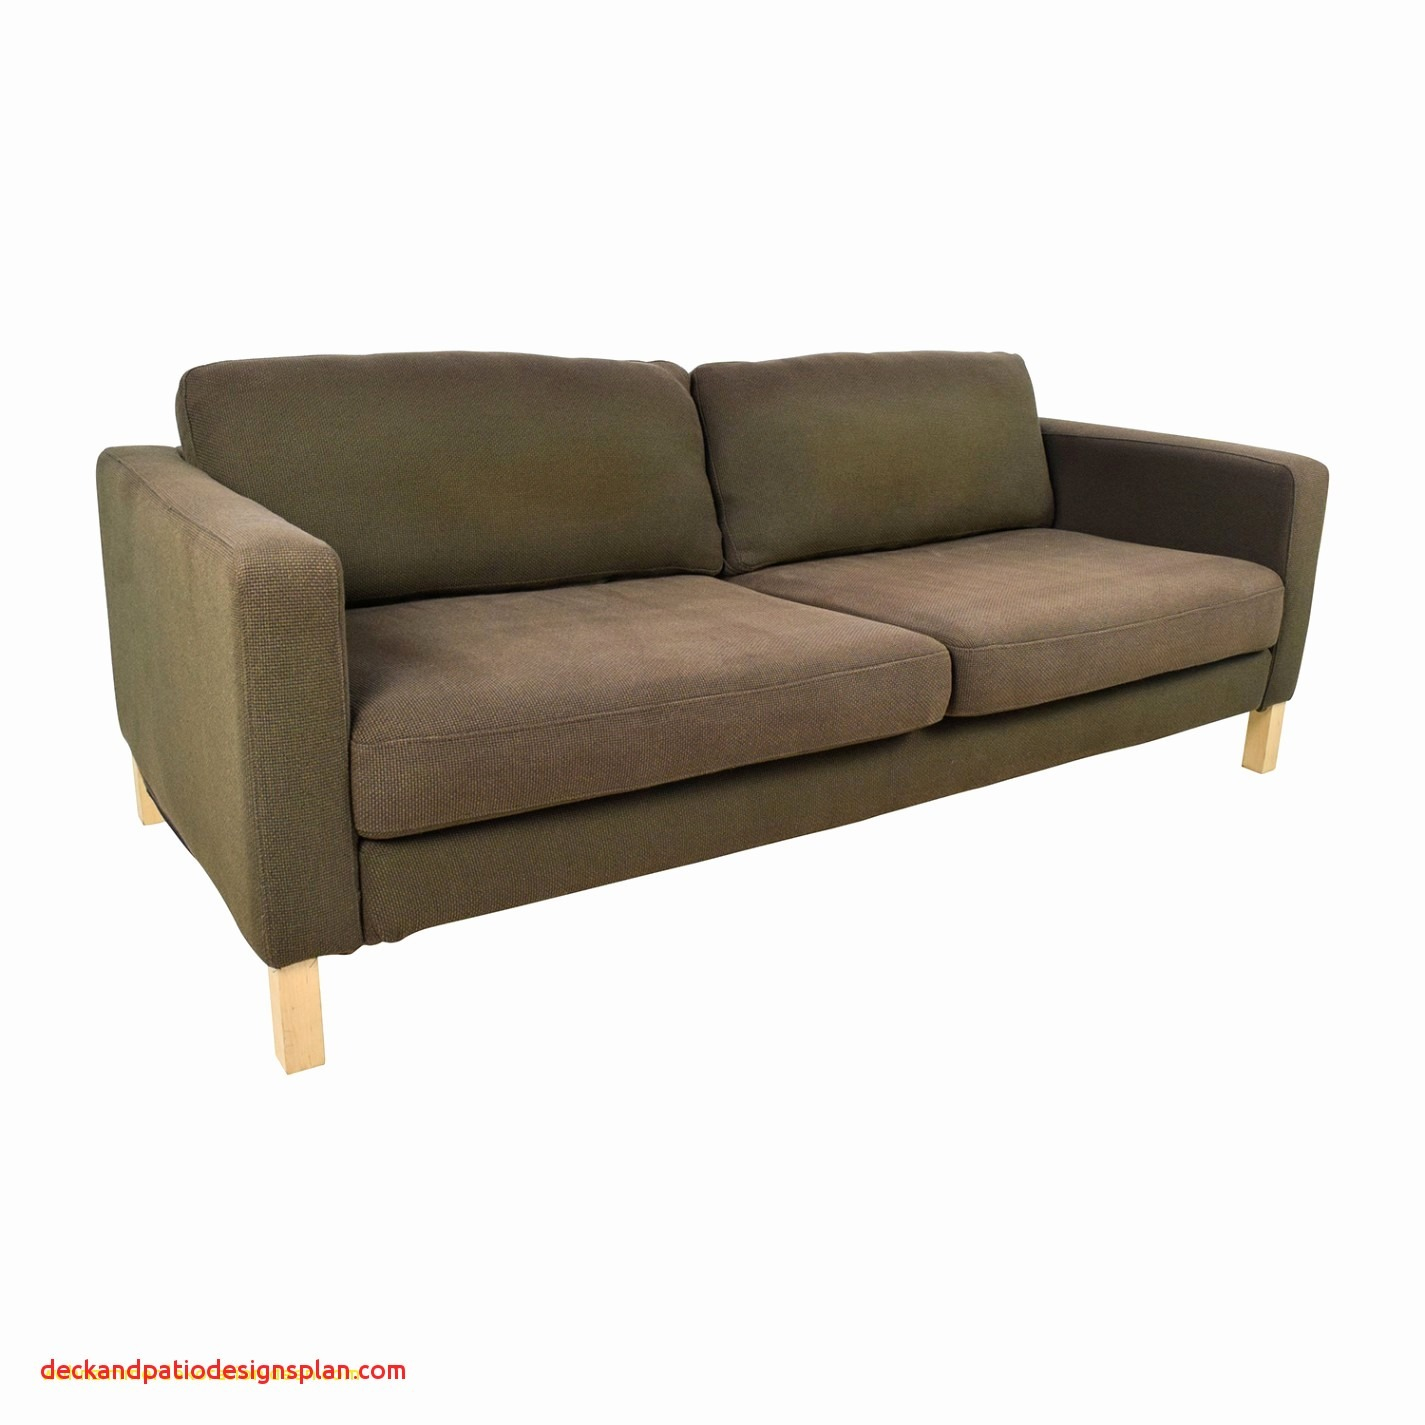 Ikea Ektorp Convertible Inspirant Collection 16 Gorgeous sofa Ikea sofa Ideas sofa Ideas